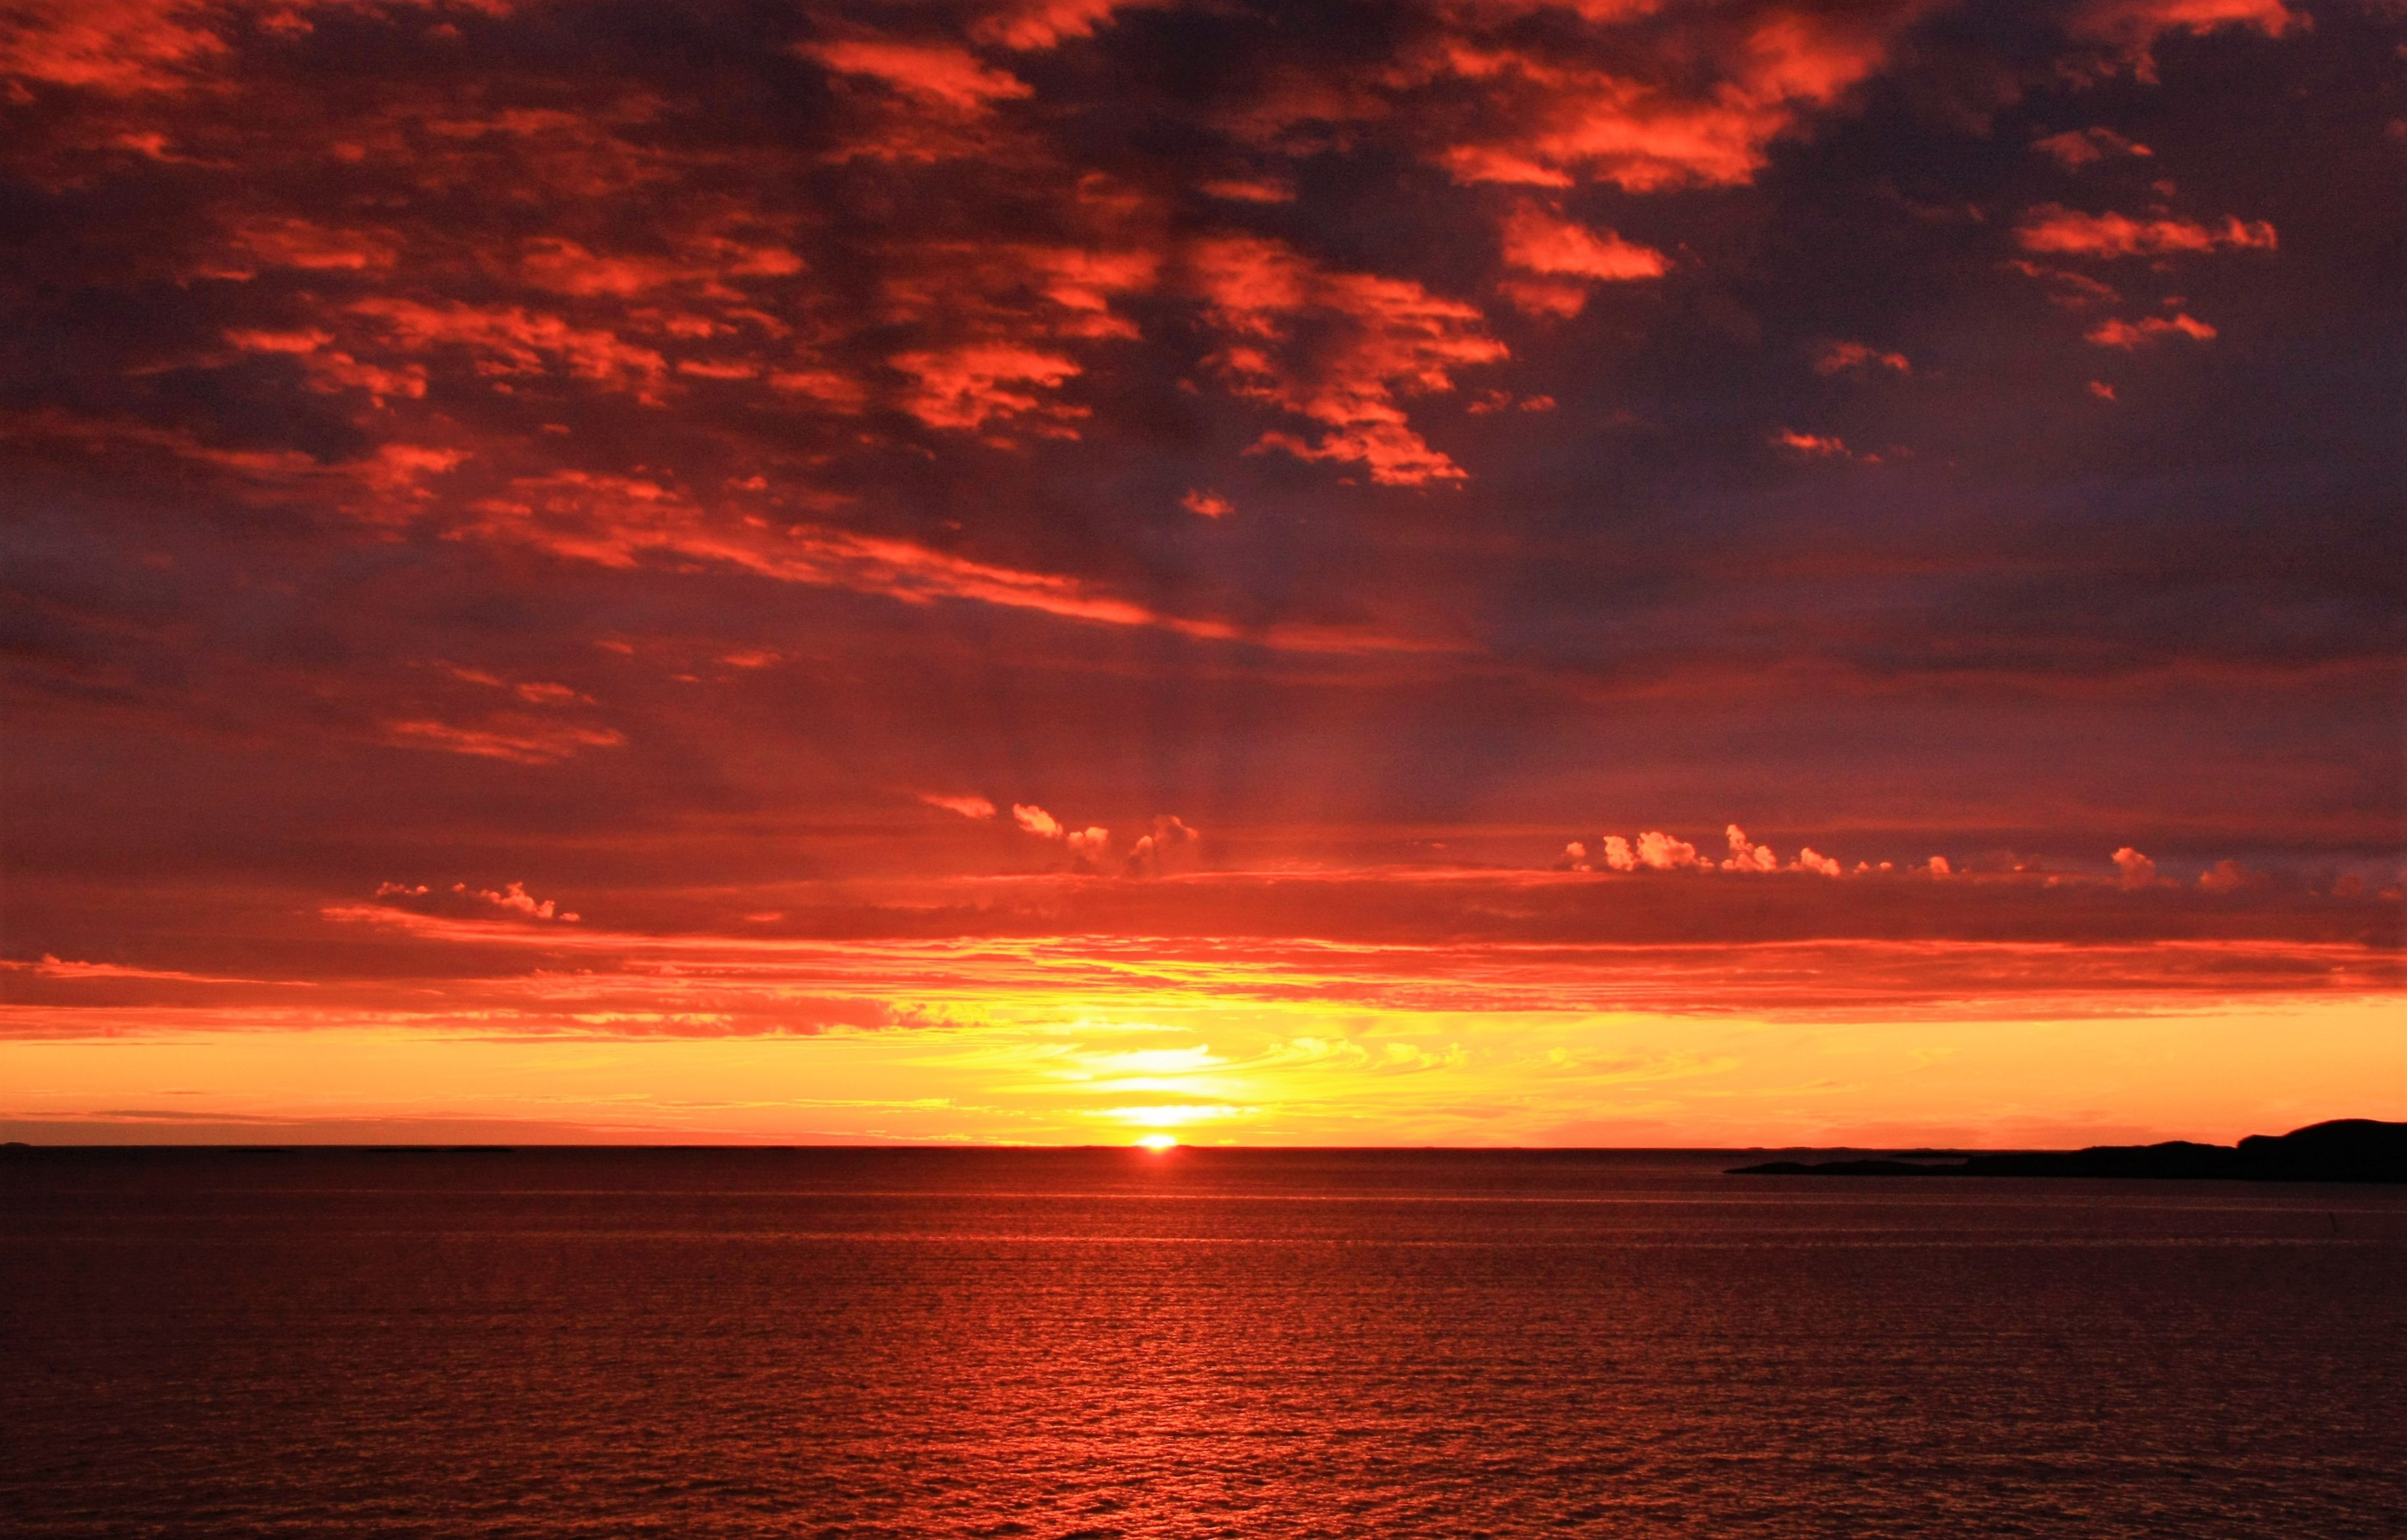 124176 download wallpaper Nature, Sea, Sun, Dawn, Horizon screensavers and pictures for free